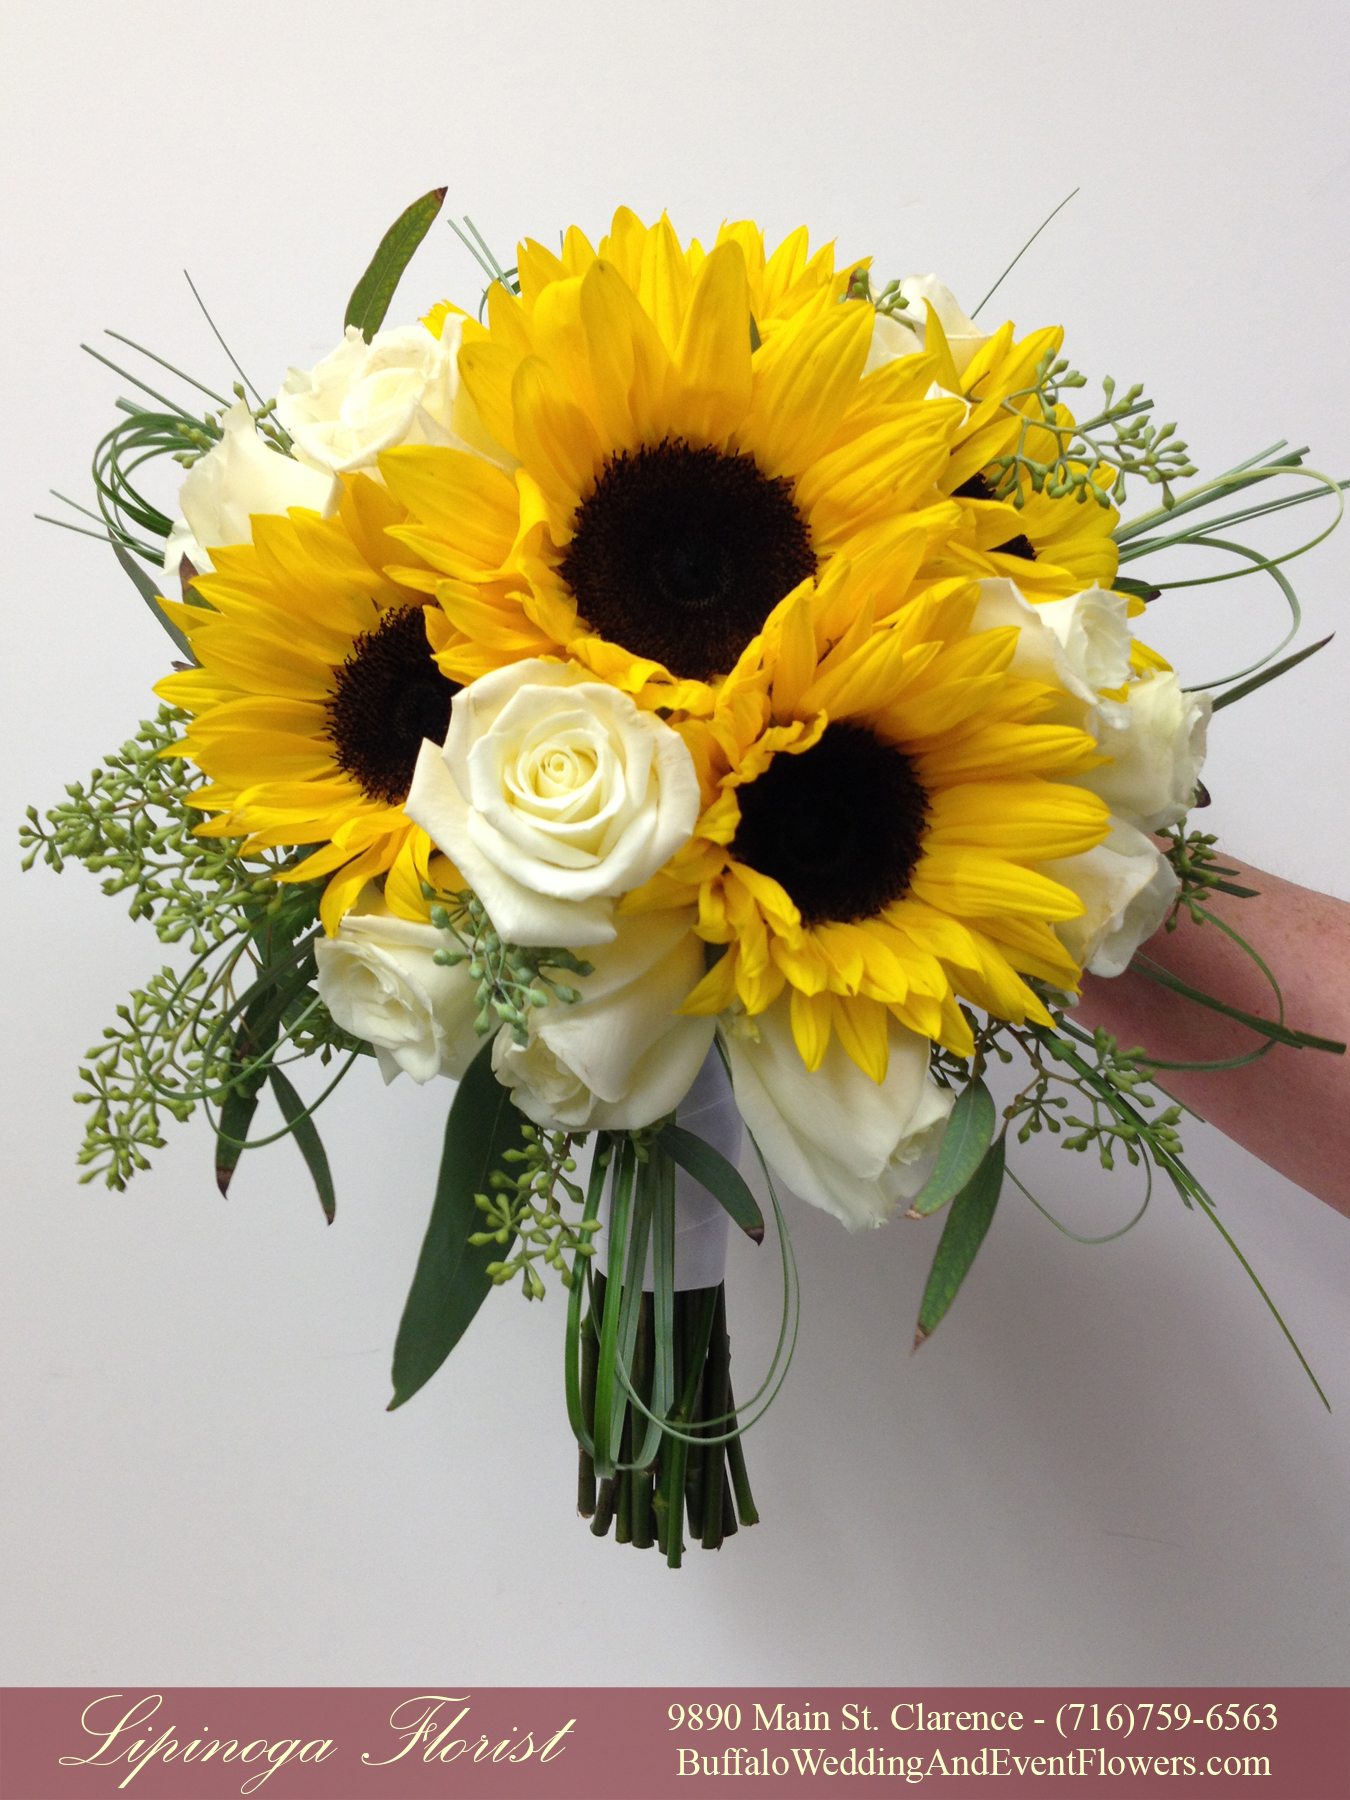 Summer Wedding Flowers Buffalo Wedding Event Flowers By Lipinoga